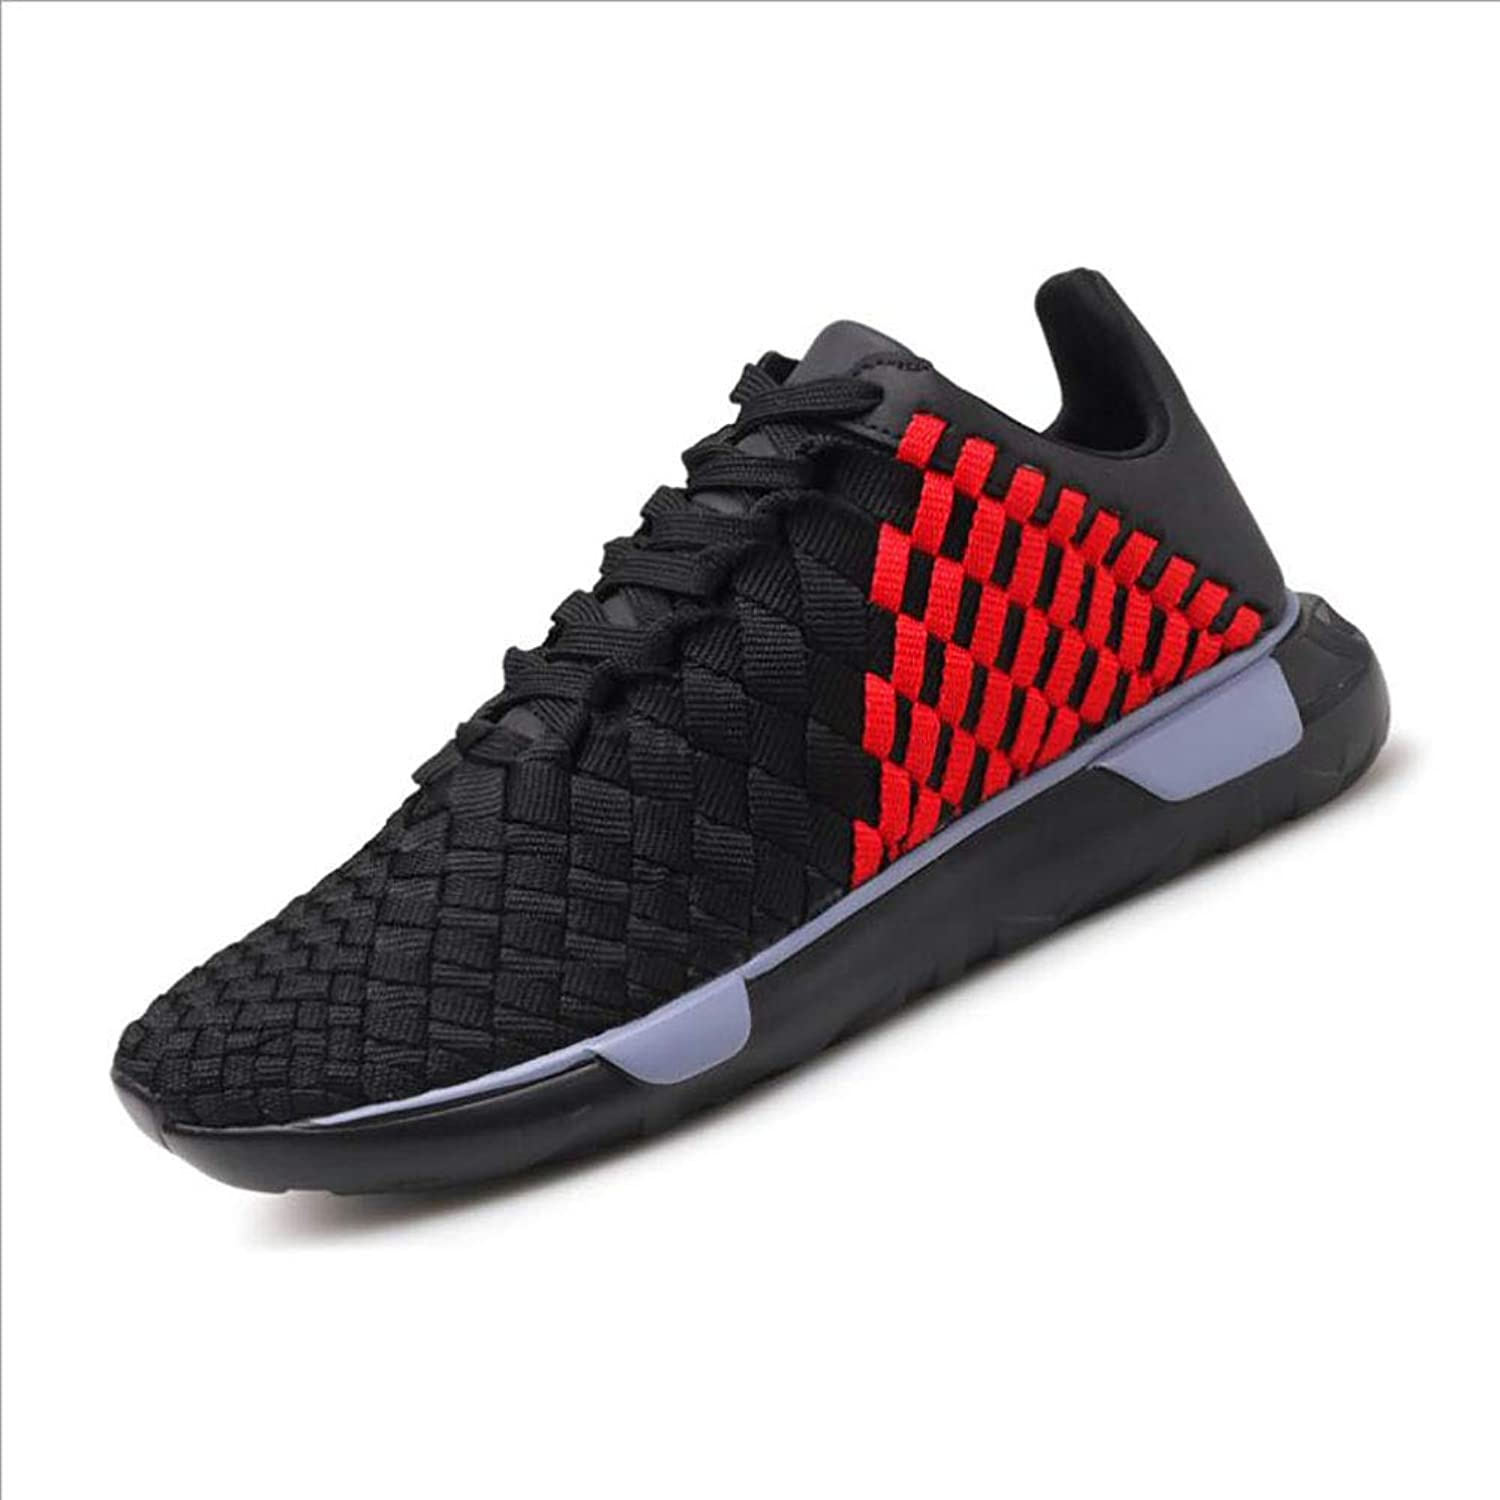 Men's shoes, Spring Fall Woven Cloth Casual Sneakers, Comfort Breathable Running shoes,Casual Travel Lace-up shoes, Trainers shoes